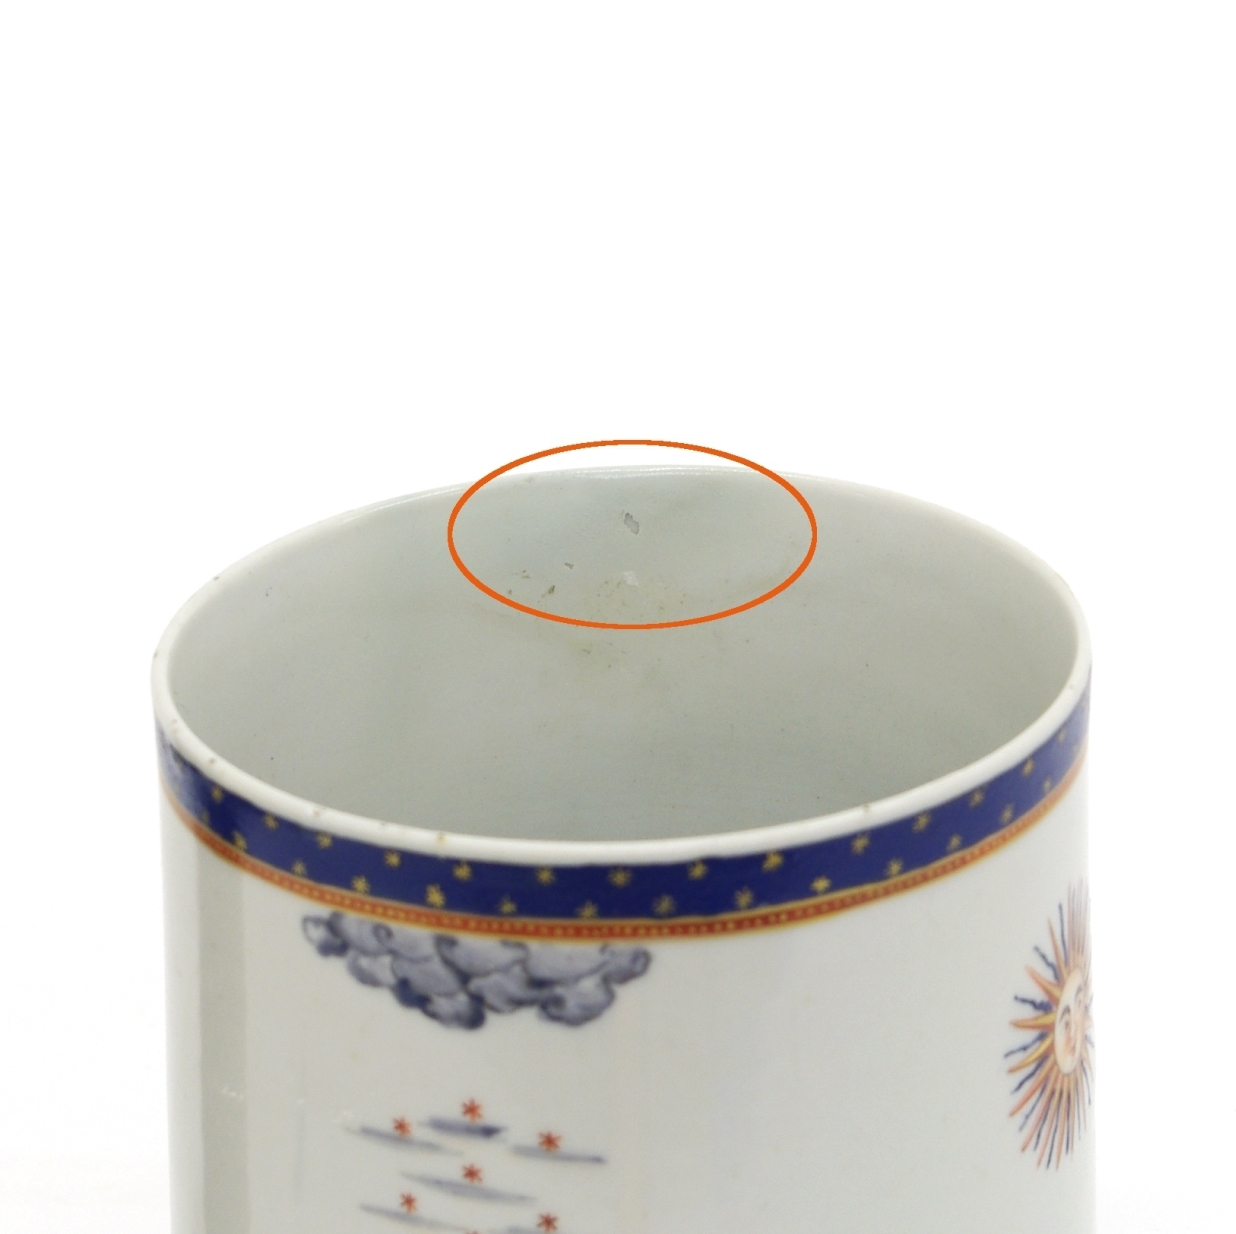 View 7: Chinese Export Porcelain Masonic Mug, c. 1795